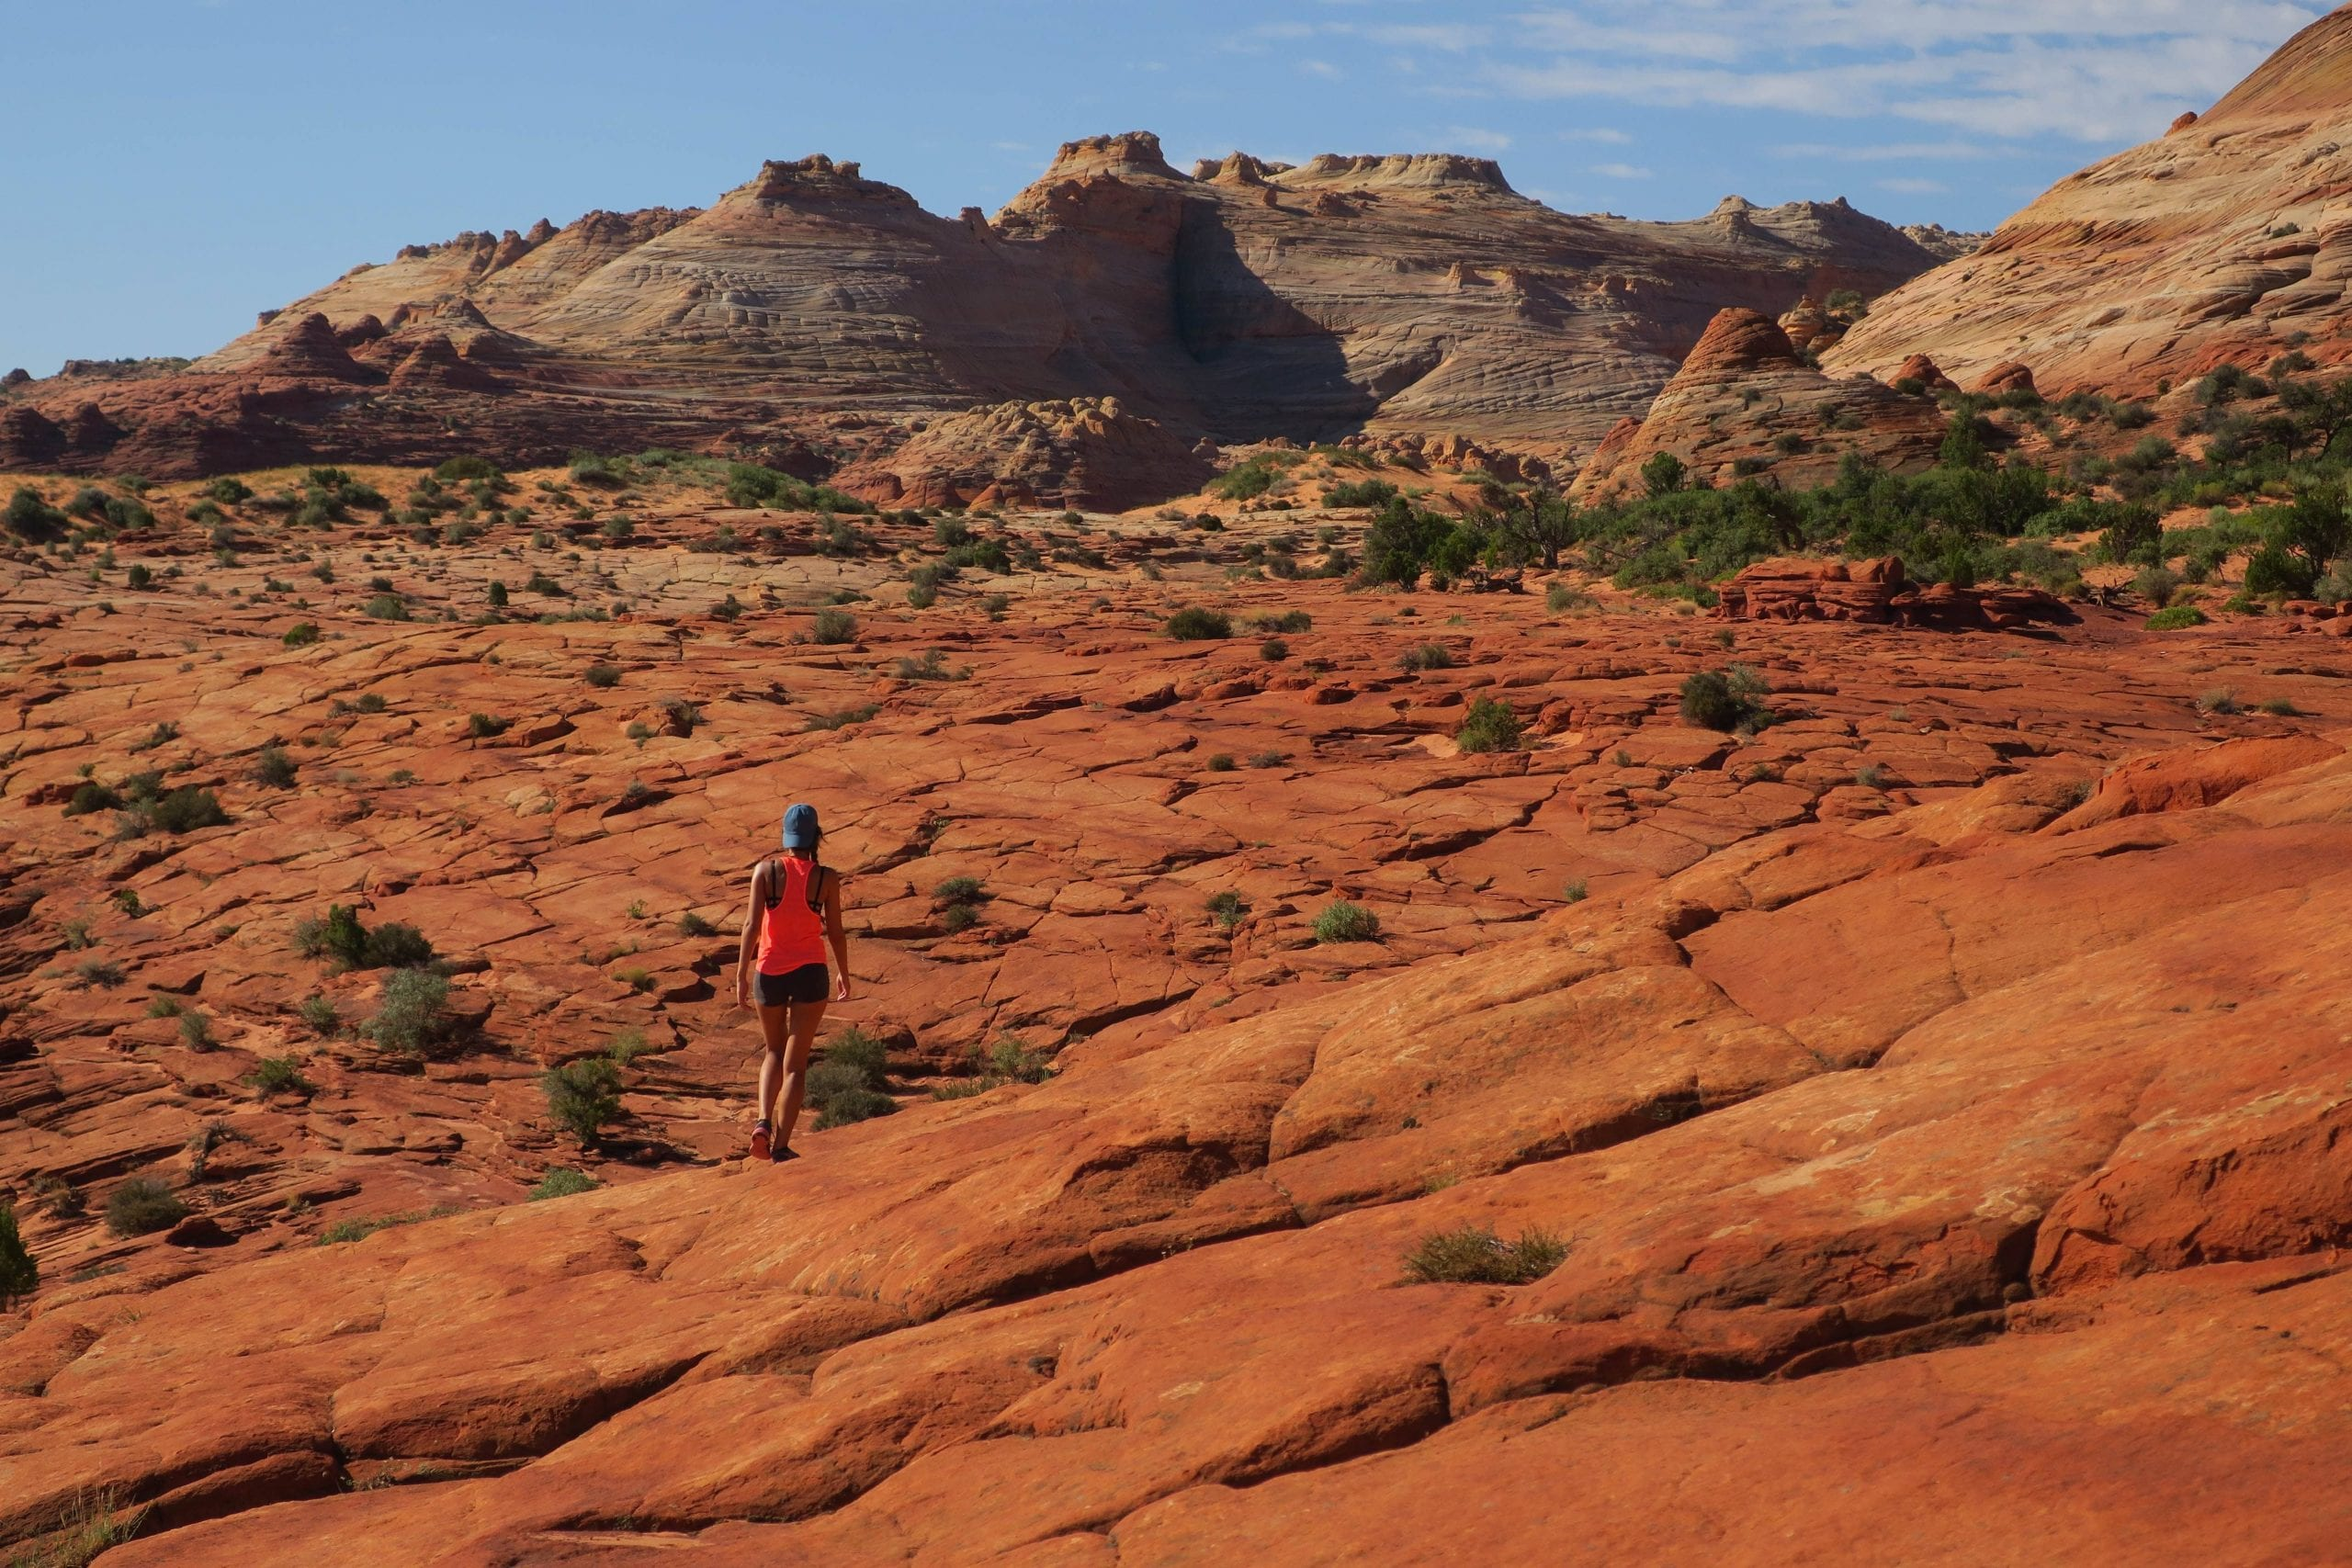 The Wave Trail, Kanab - Gert Boers